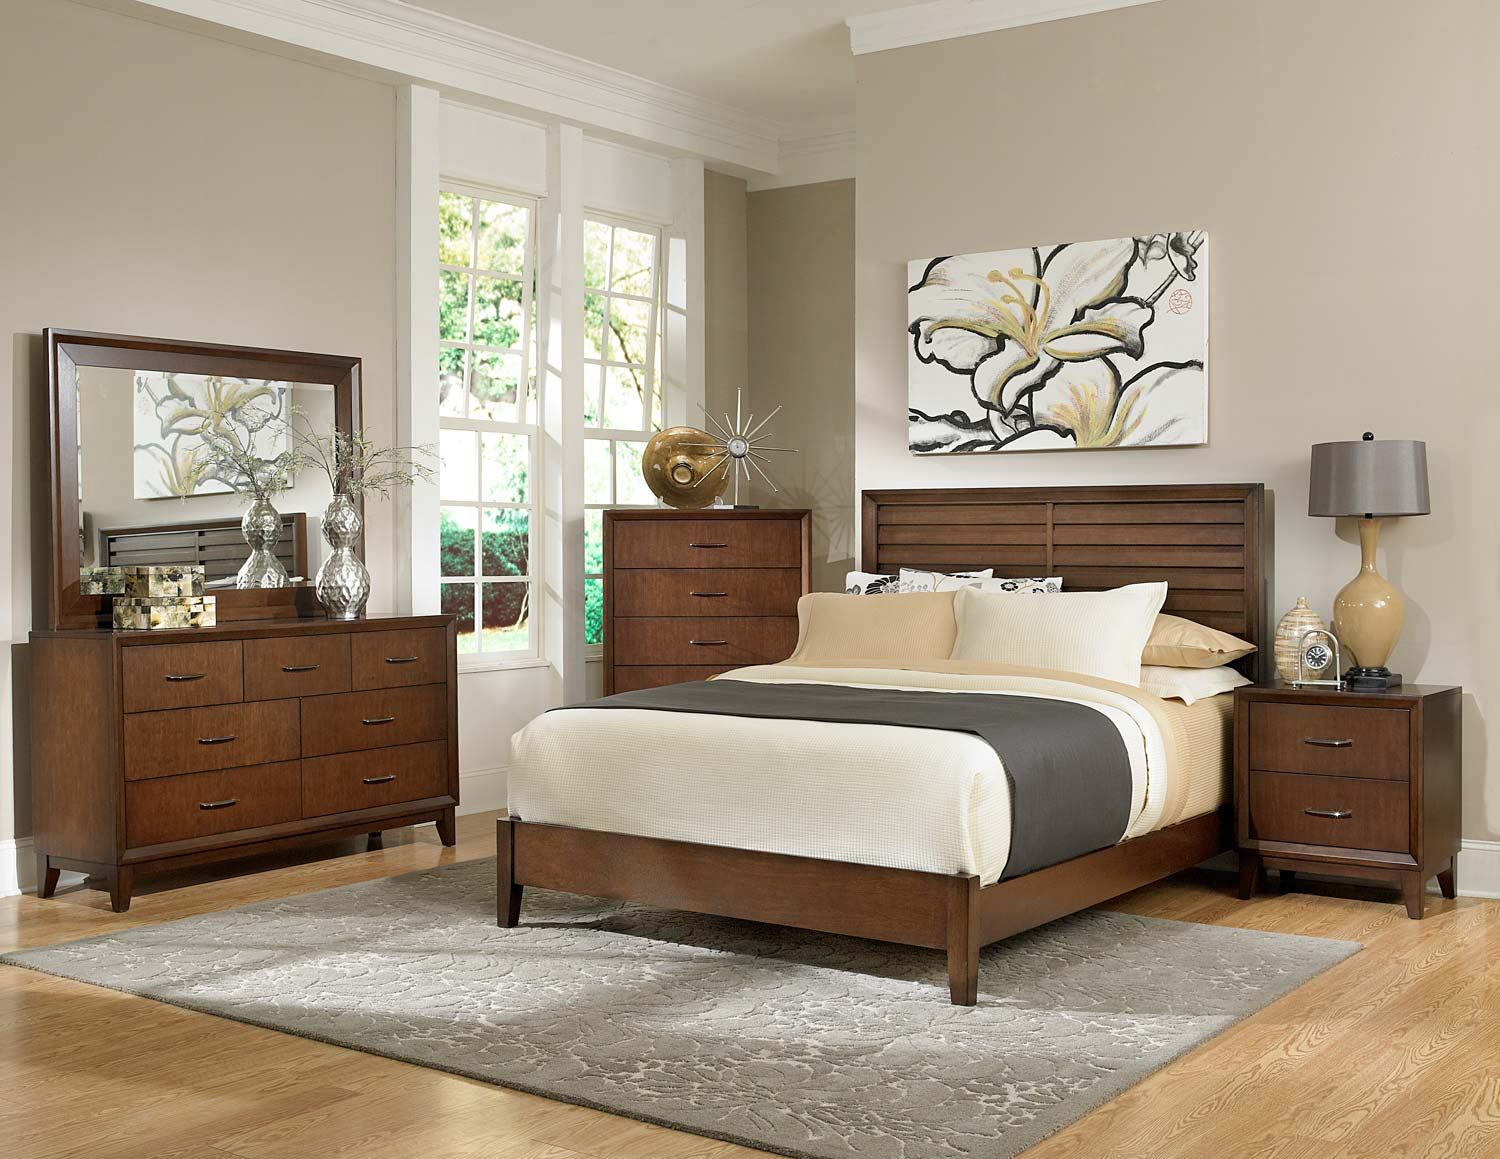 Homelegance Oliver Bedroom Set - Warm Brown Cherry